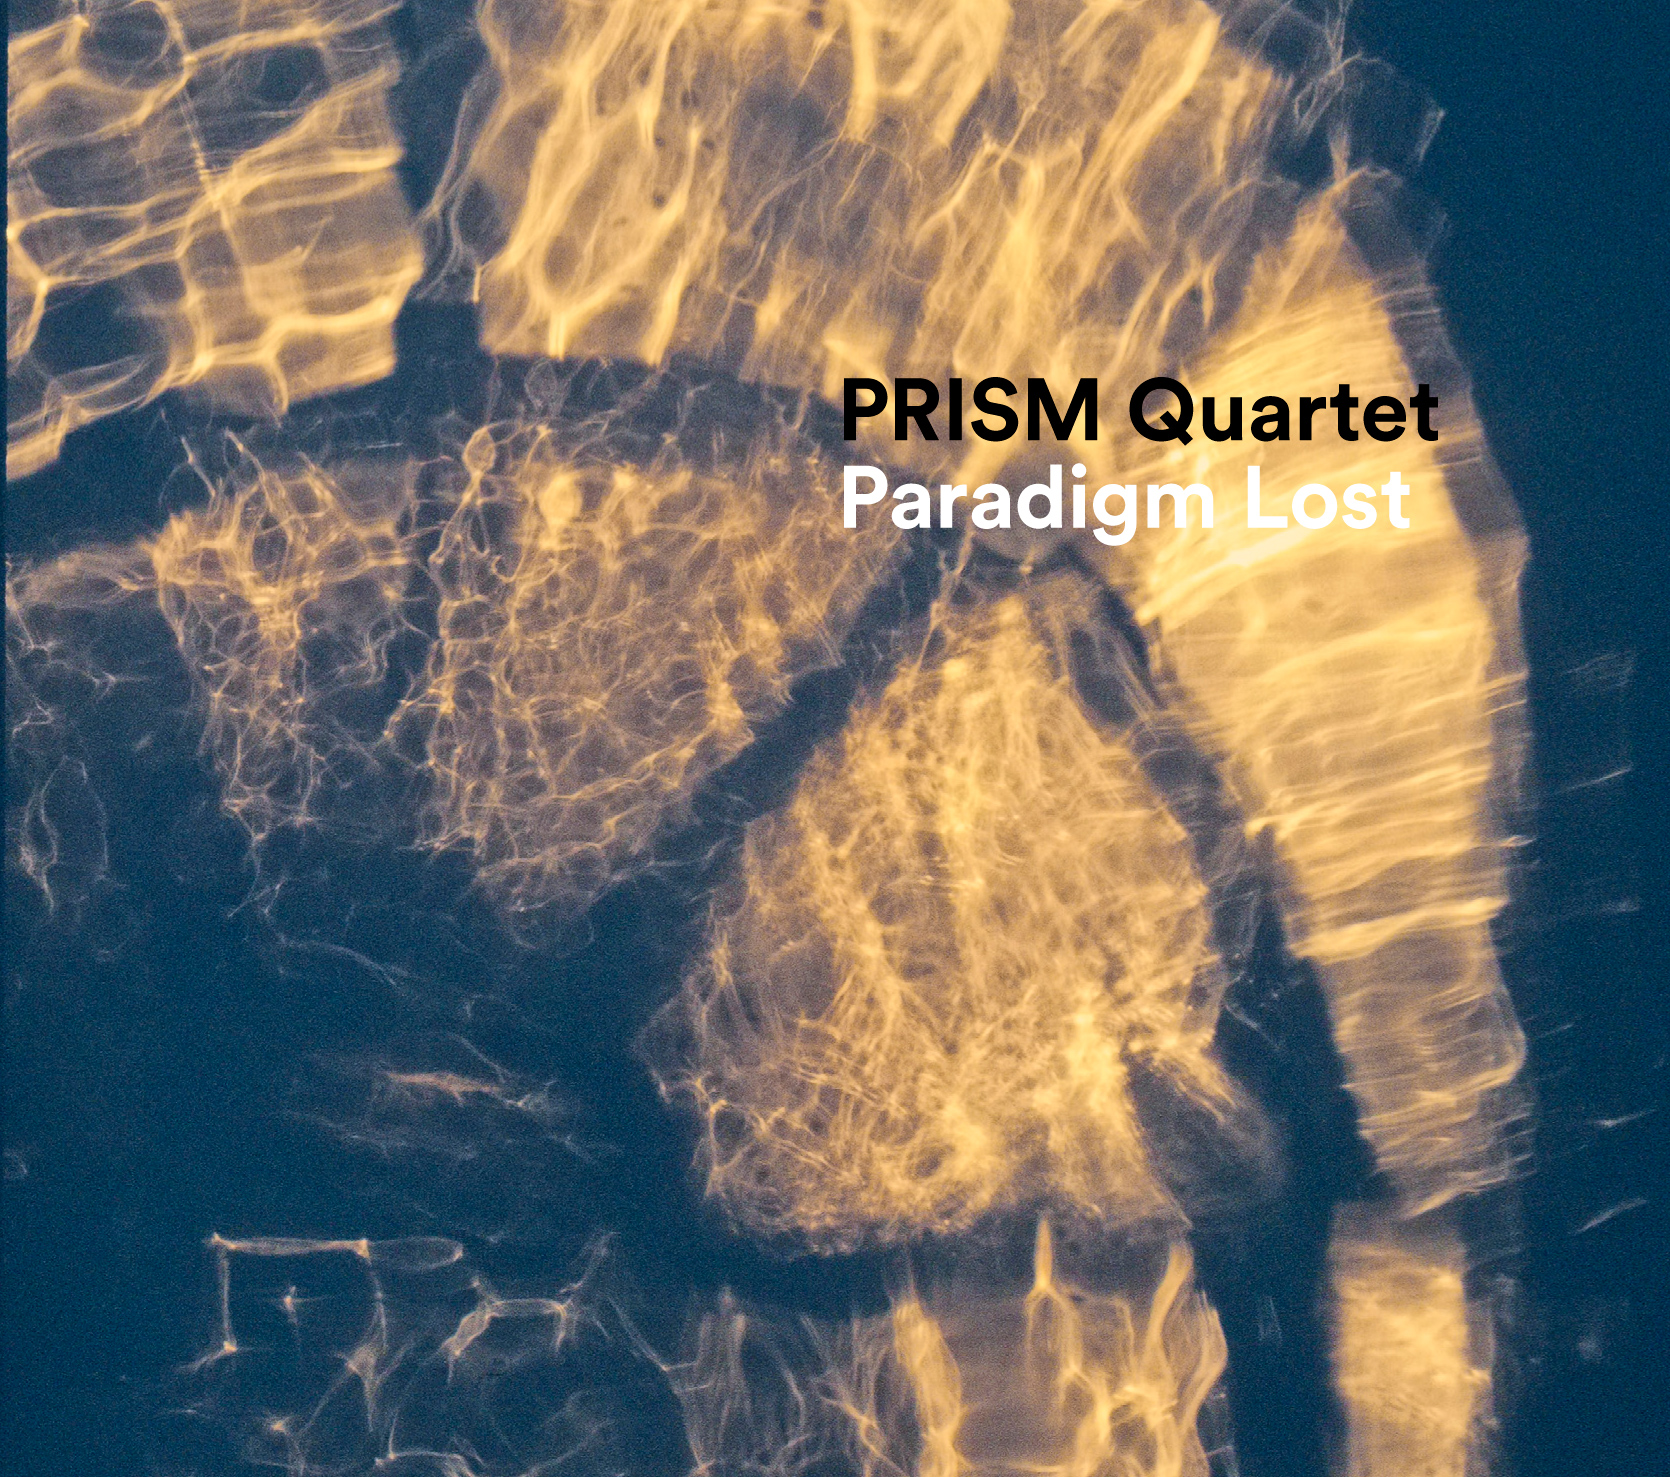 PRISM Quartet: Paradigm Lost